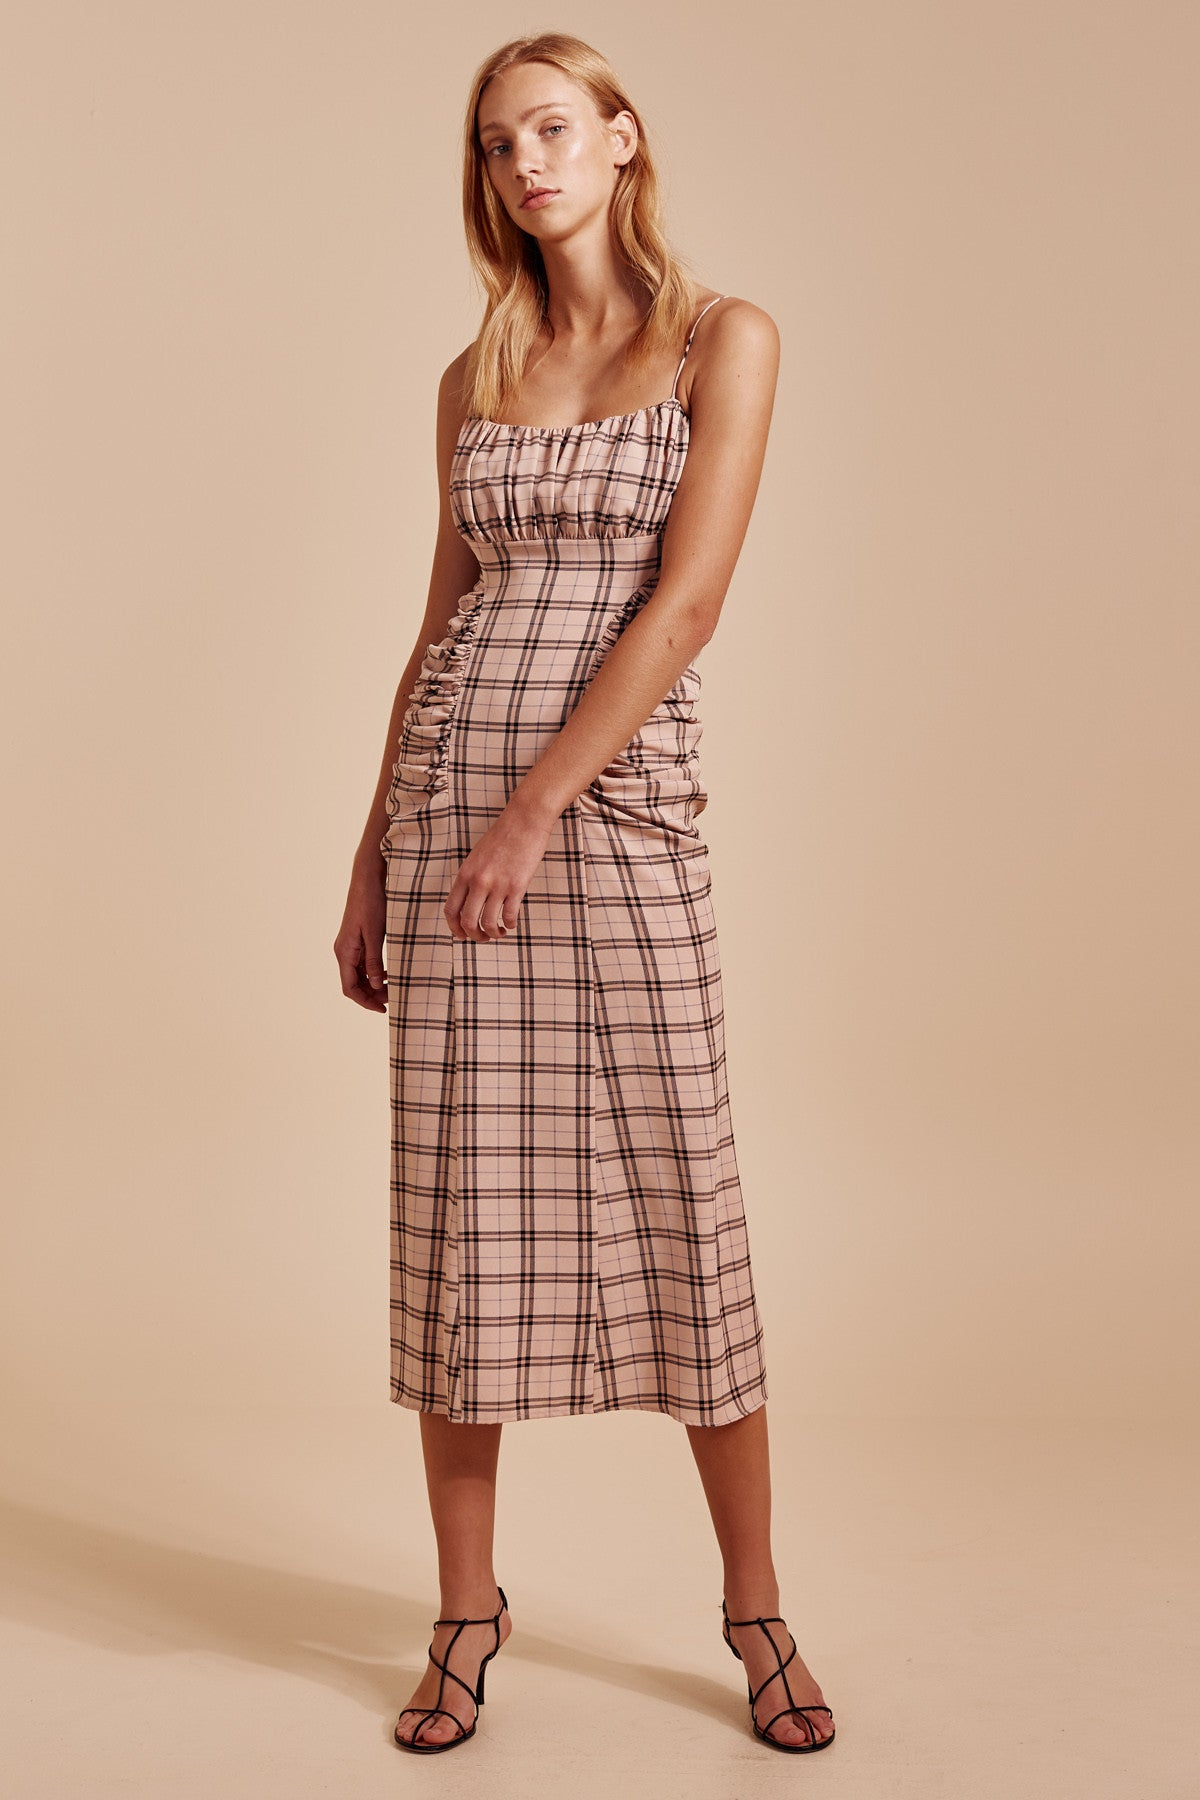 DEFINE SHORT SLEEVE DRESS nude check